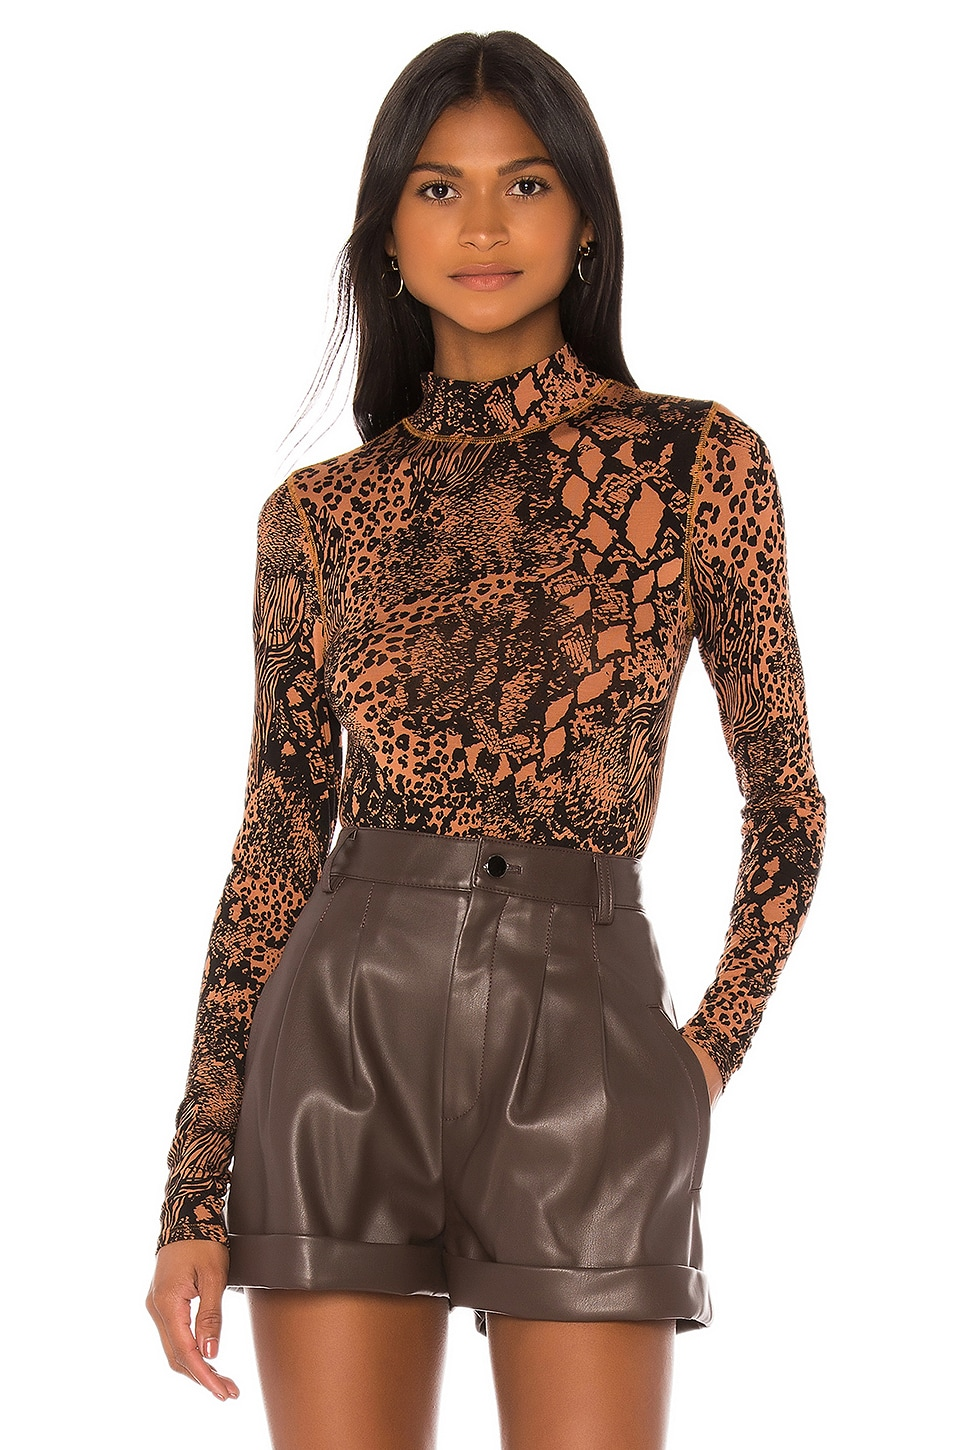 L'Academie The Zelie Bodysuit in Jungle Animal